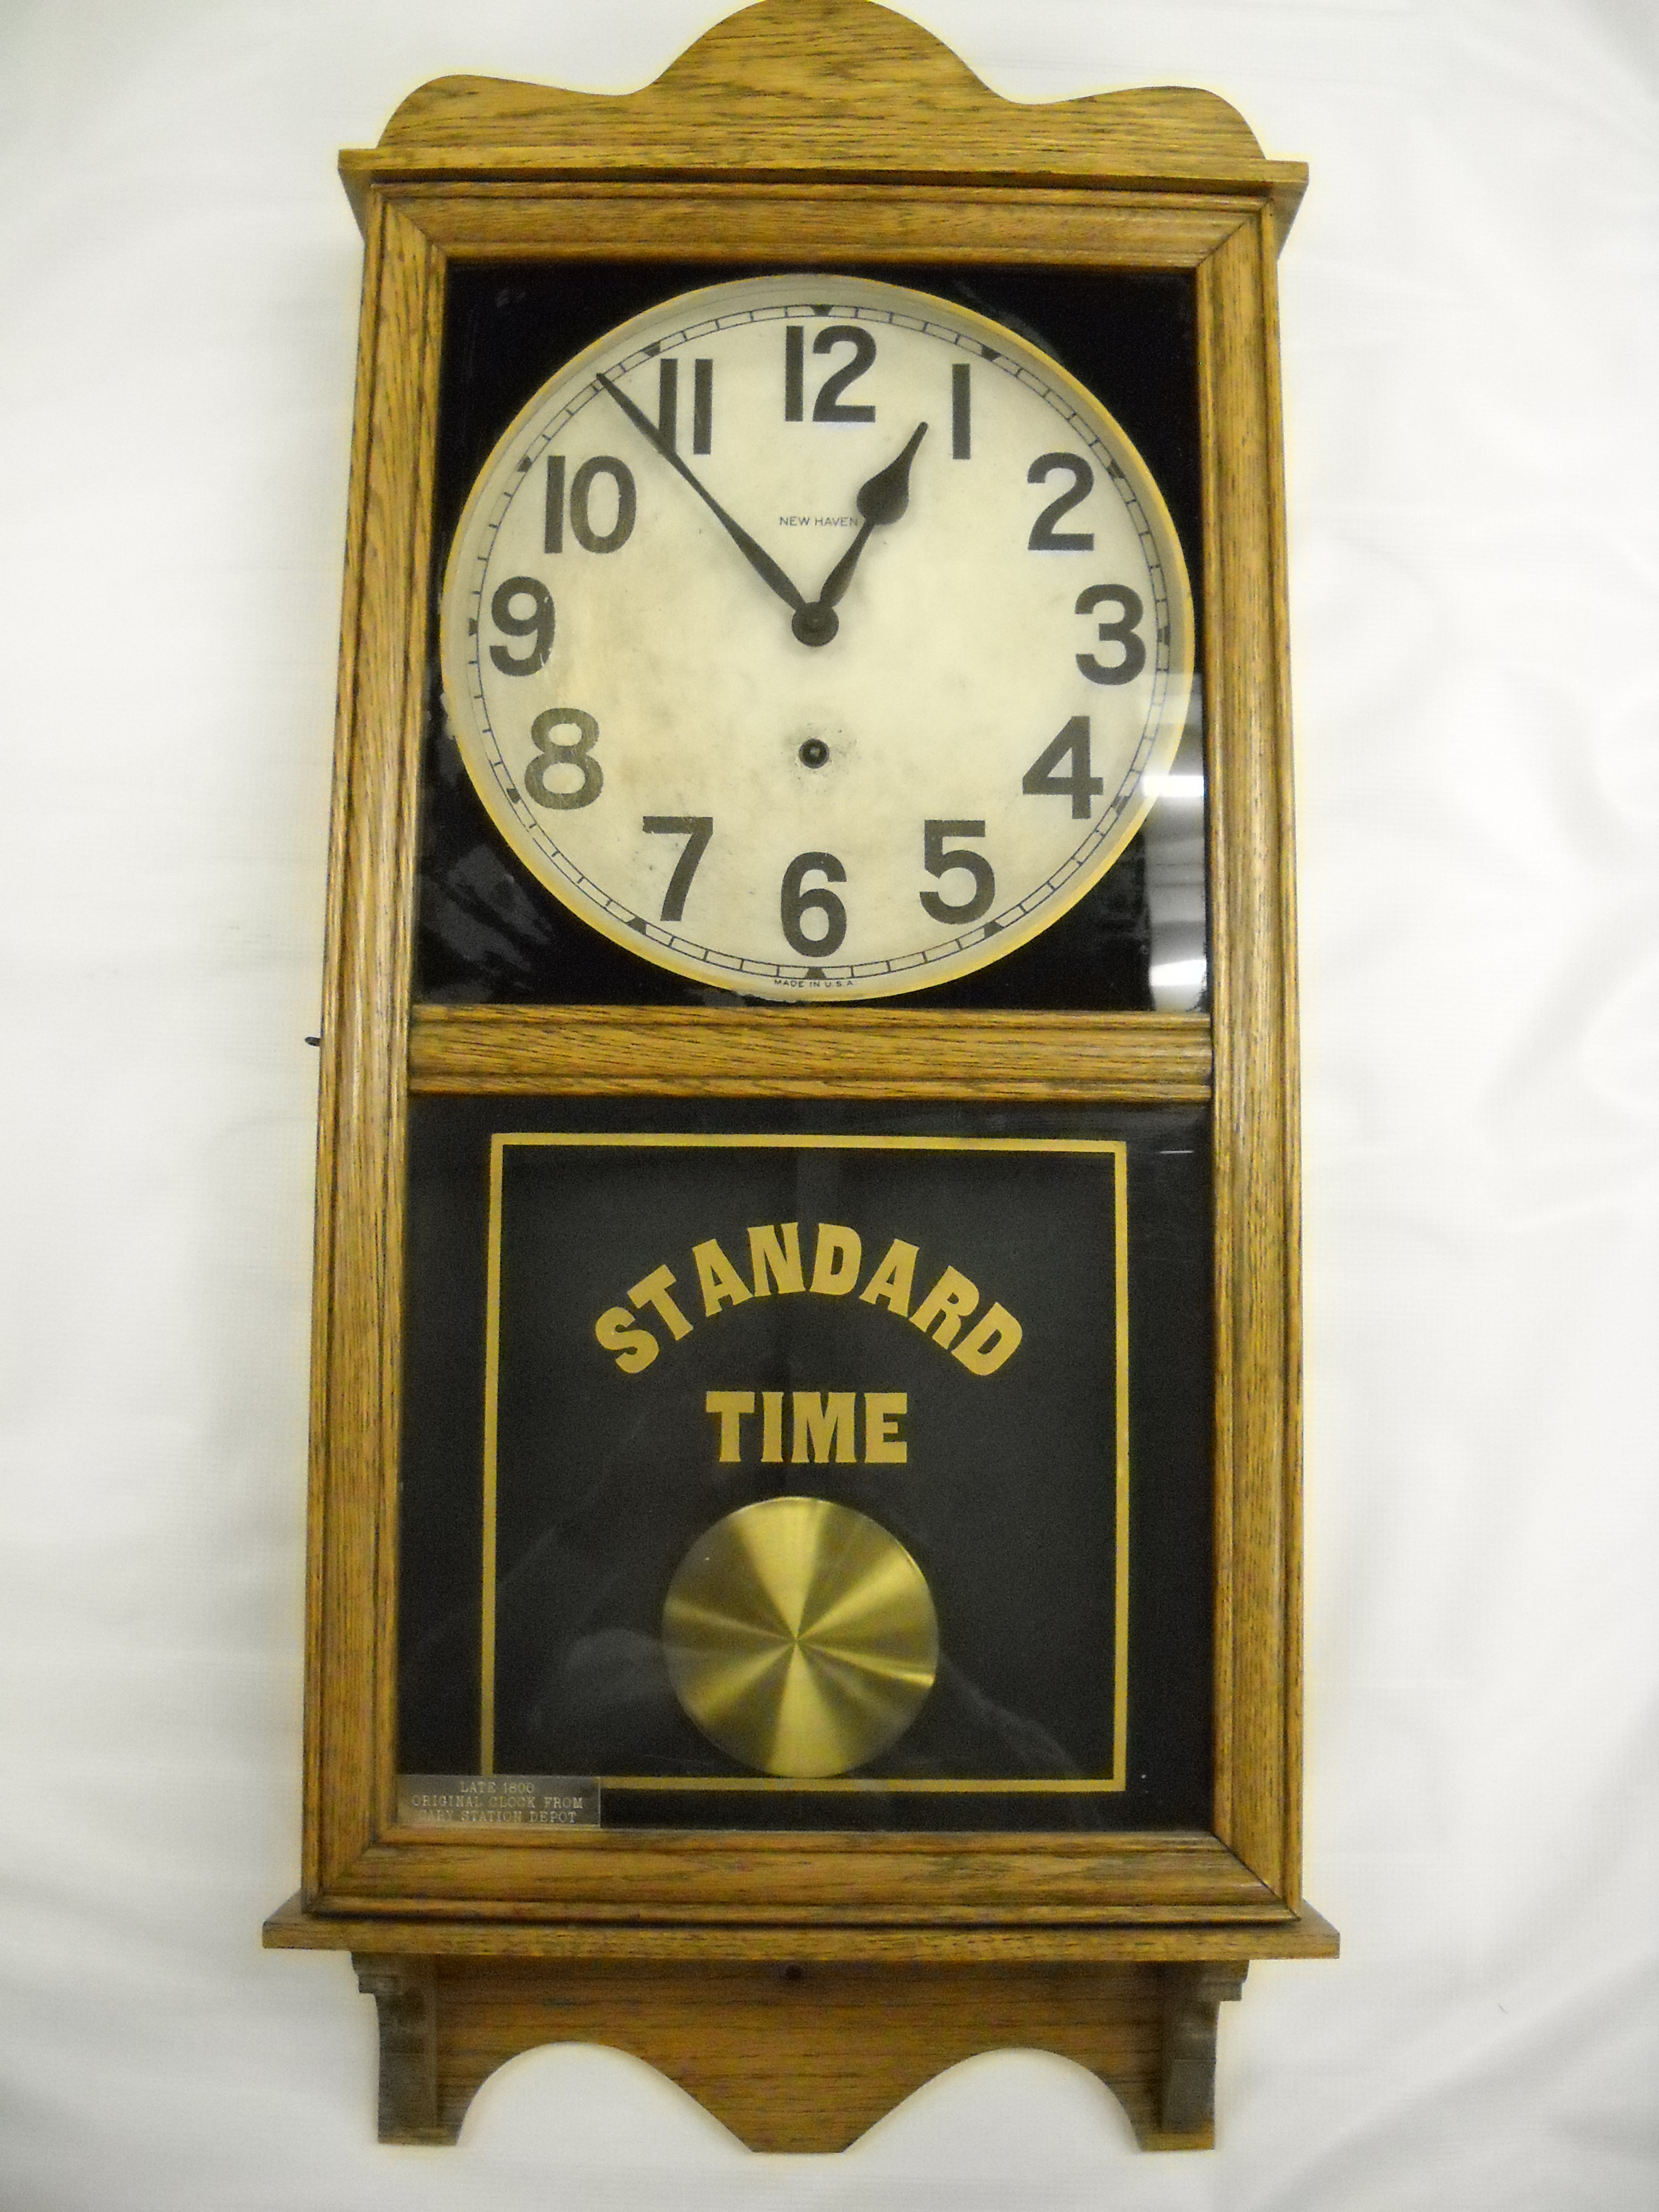 Original Wall Clock From the First Cary Station Train Depot